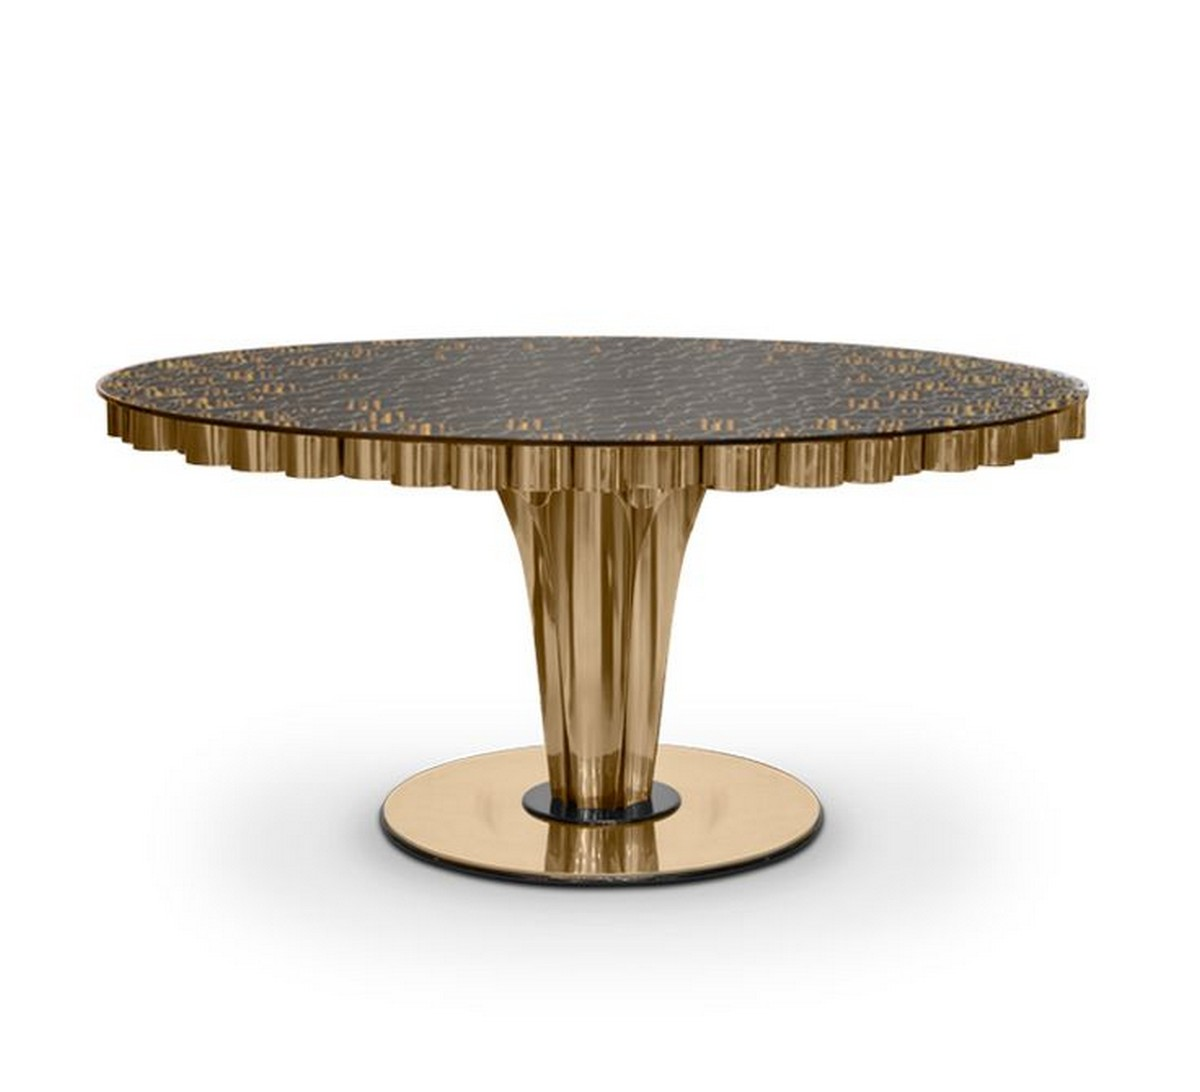 Top Bespoke Dining Tables [object object] Exquisite Dining Tables To Level Up Your Home Decor wormley2